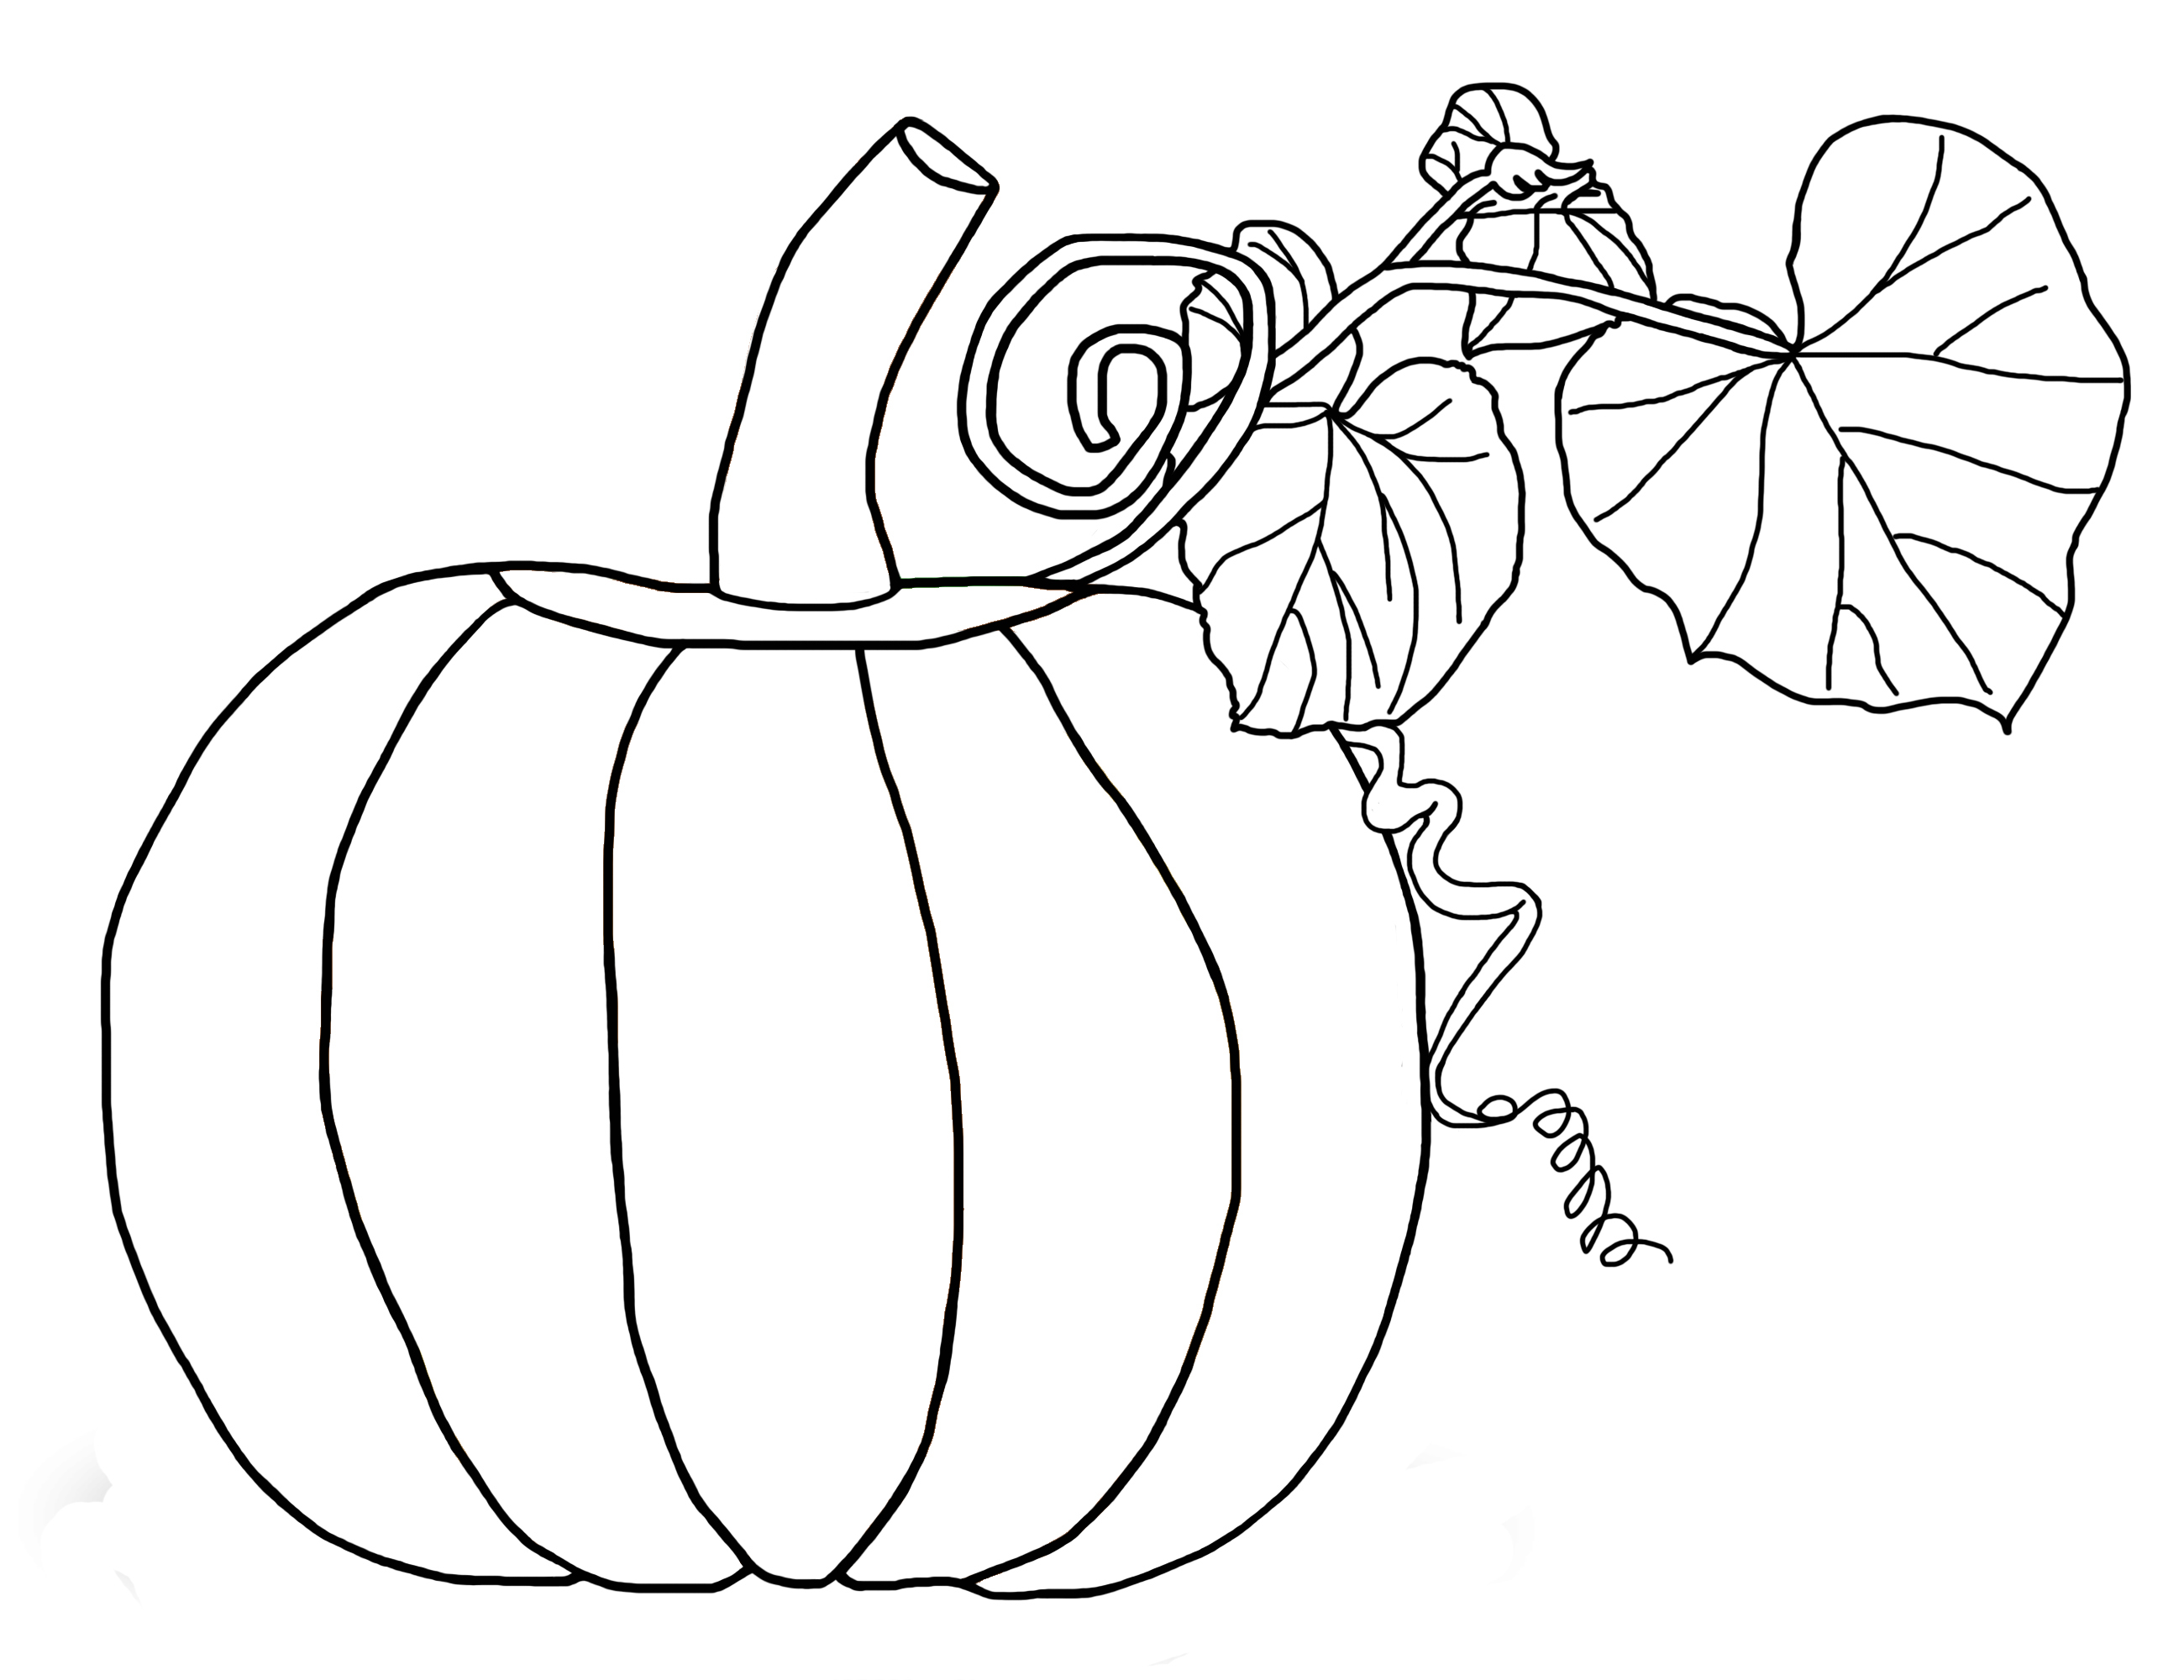 2600x2000 Free Printable Pumpkin Coloring Pages For Kids Pumpkin Coloring